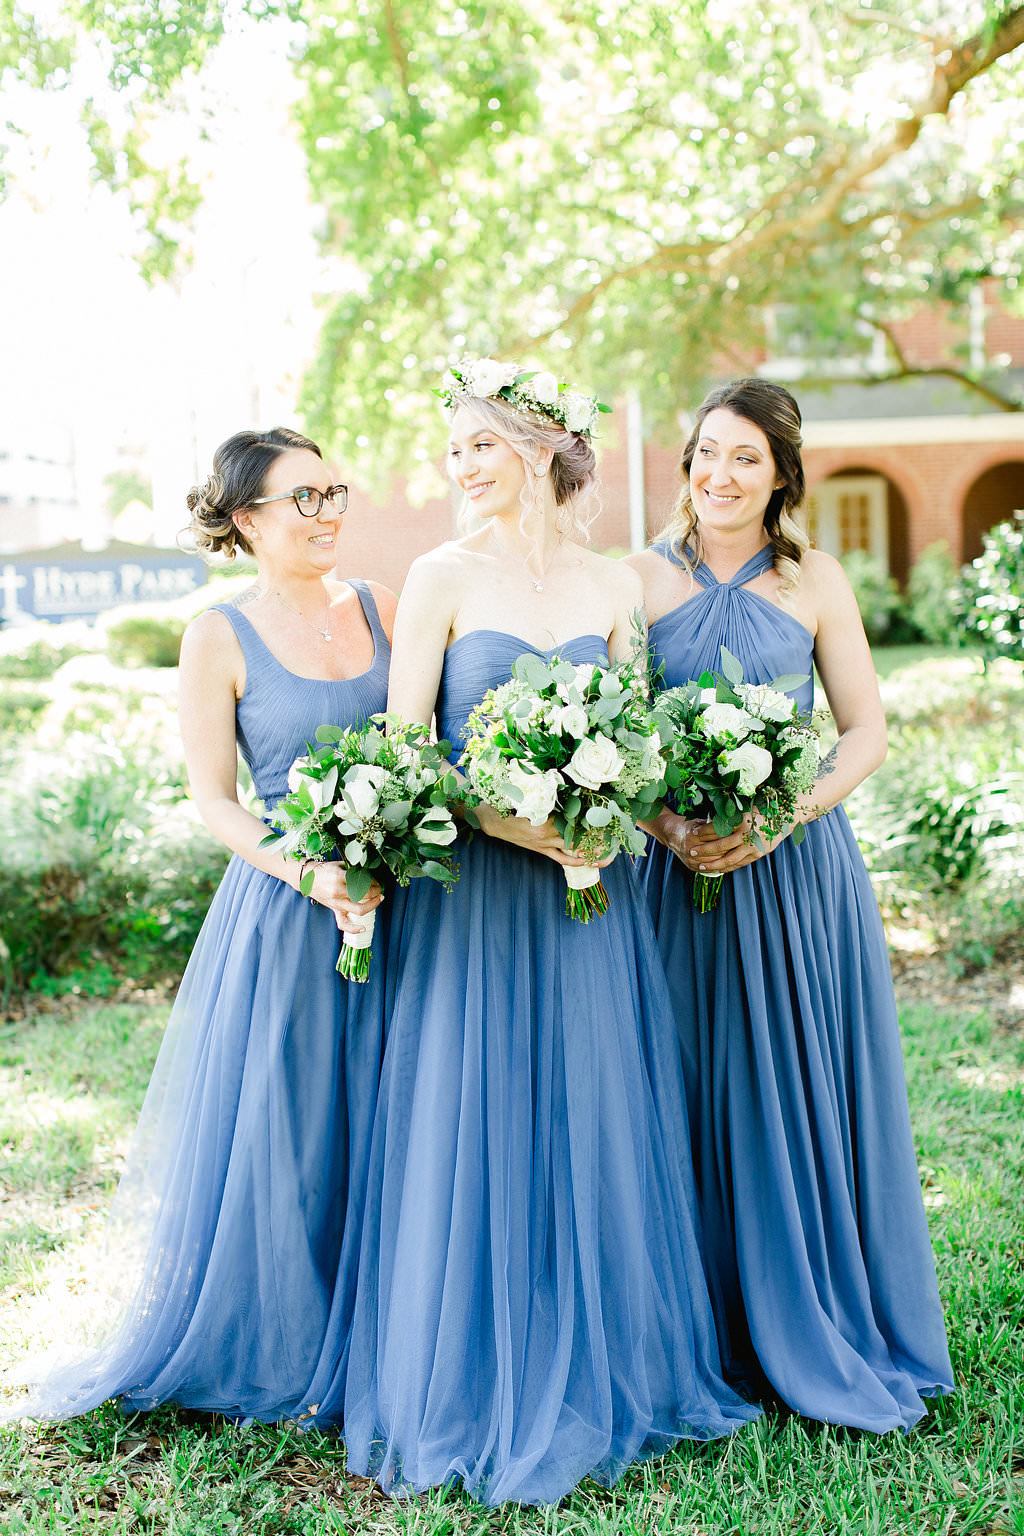 Tampa Bridesmaids in Mismatched Style Blue Dresses with Organic White, Ivory and Greenery Floral Bouquets